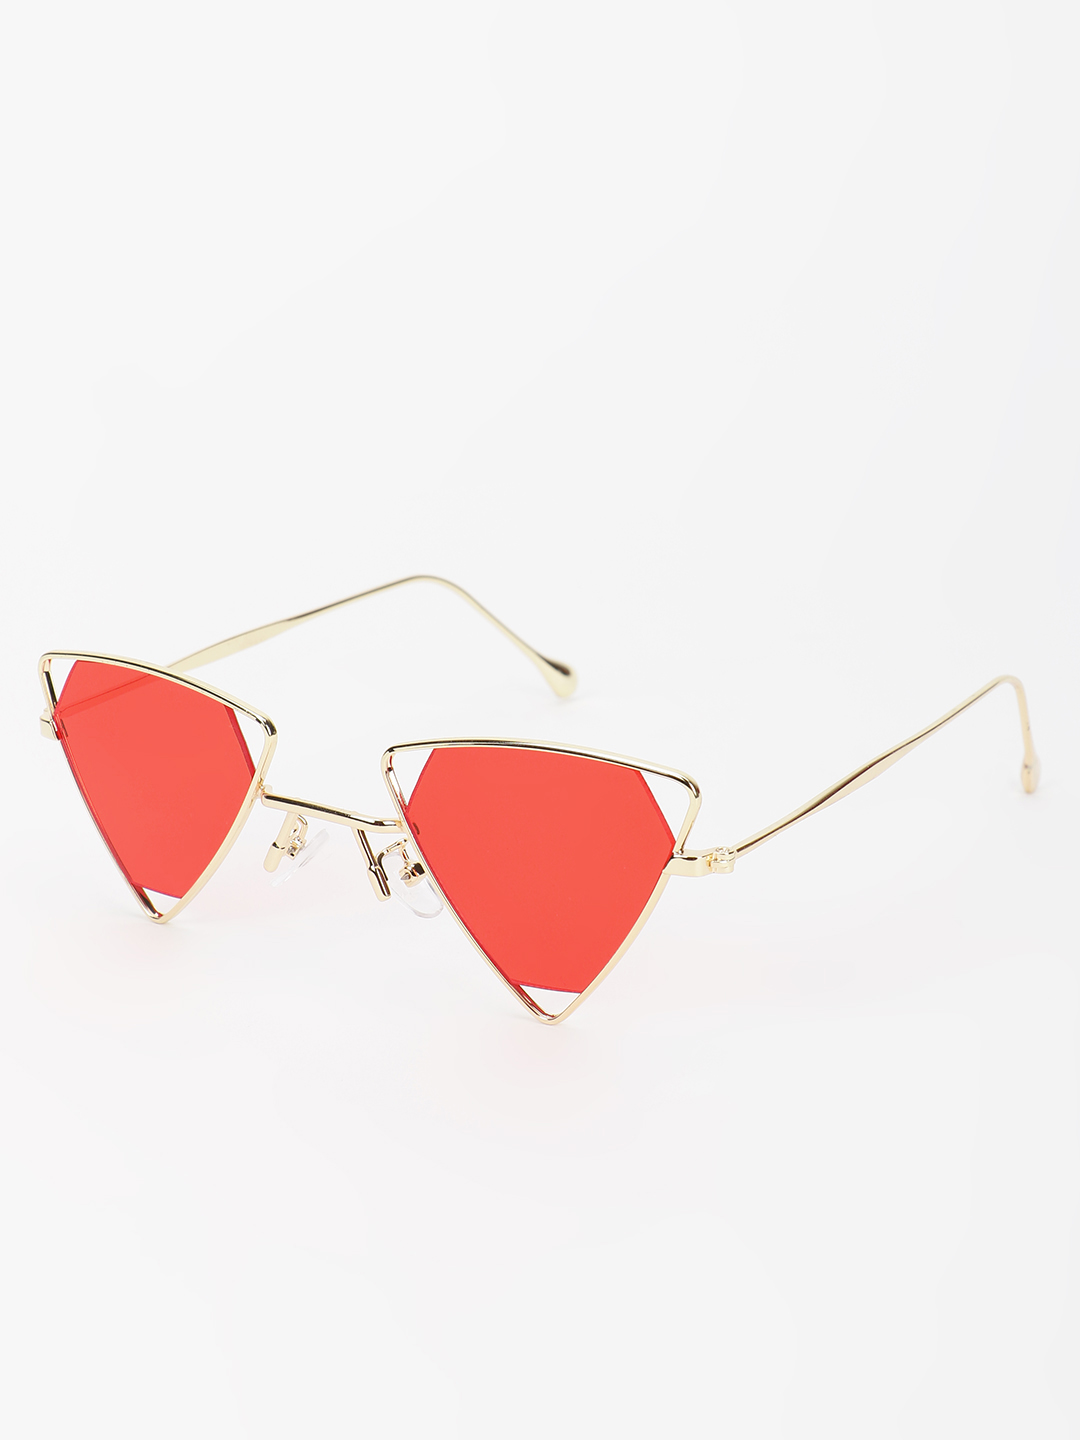 Pataaka Red Triangle Frame Retro Sunglasses 1